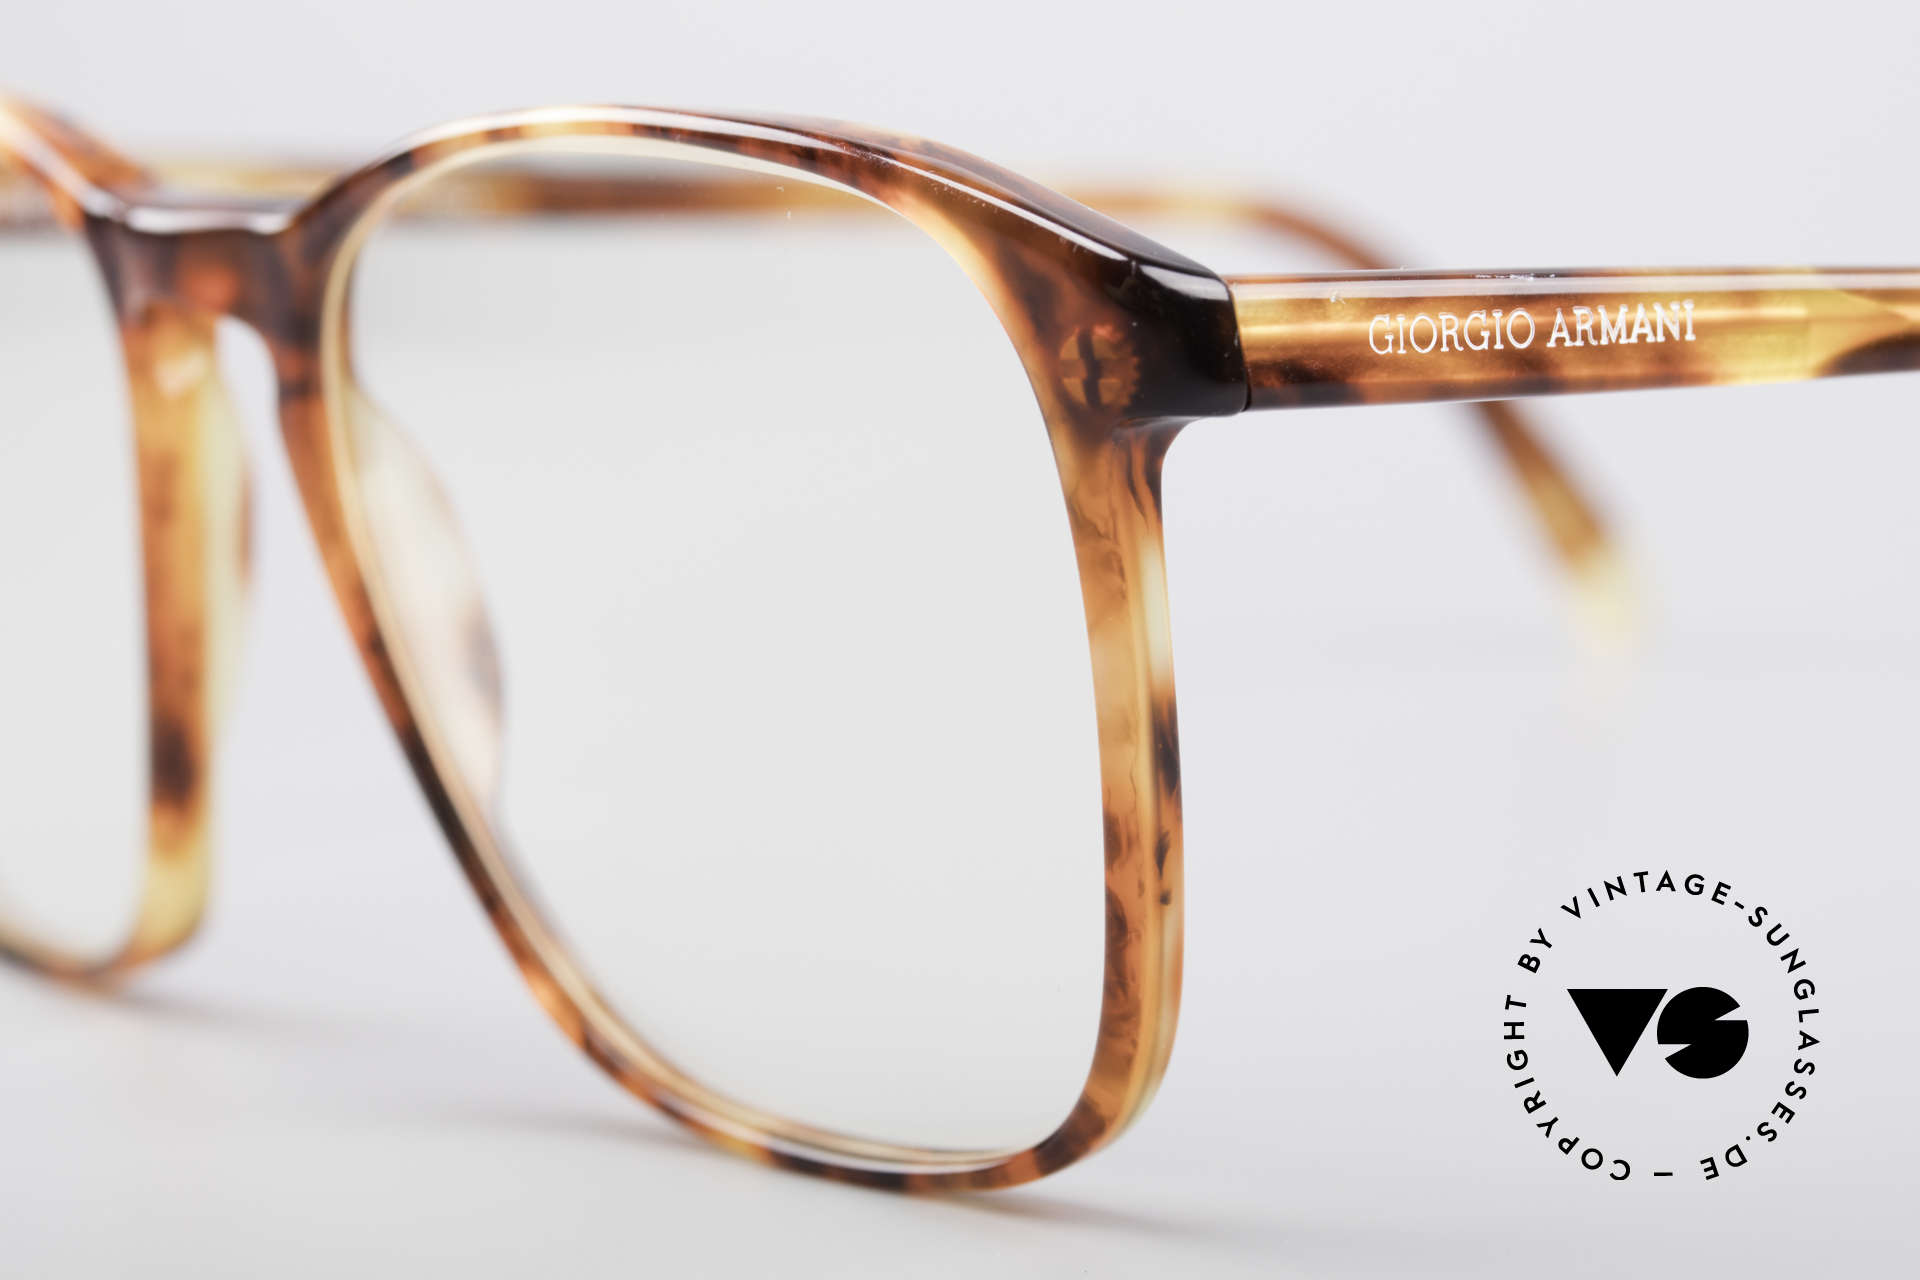 Giorgio Armani 328 True Vintage Glasses, frame is made for lenses of any kind (optical/sun), Made for Men